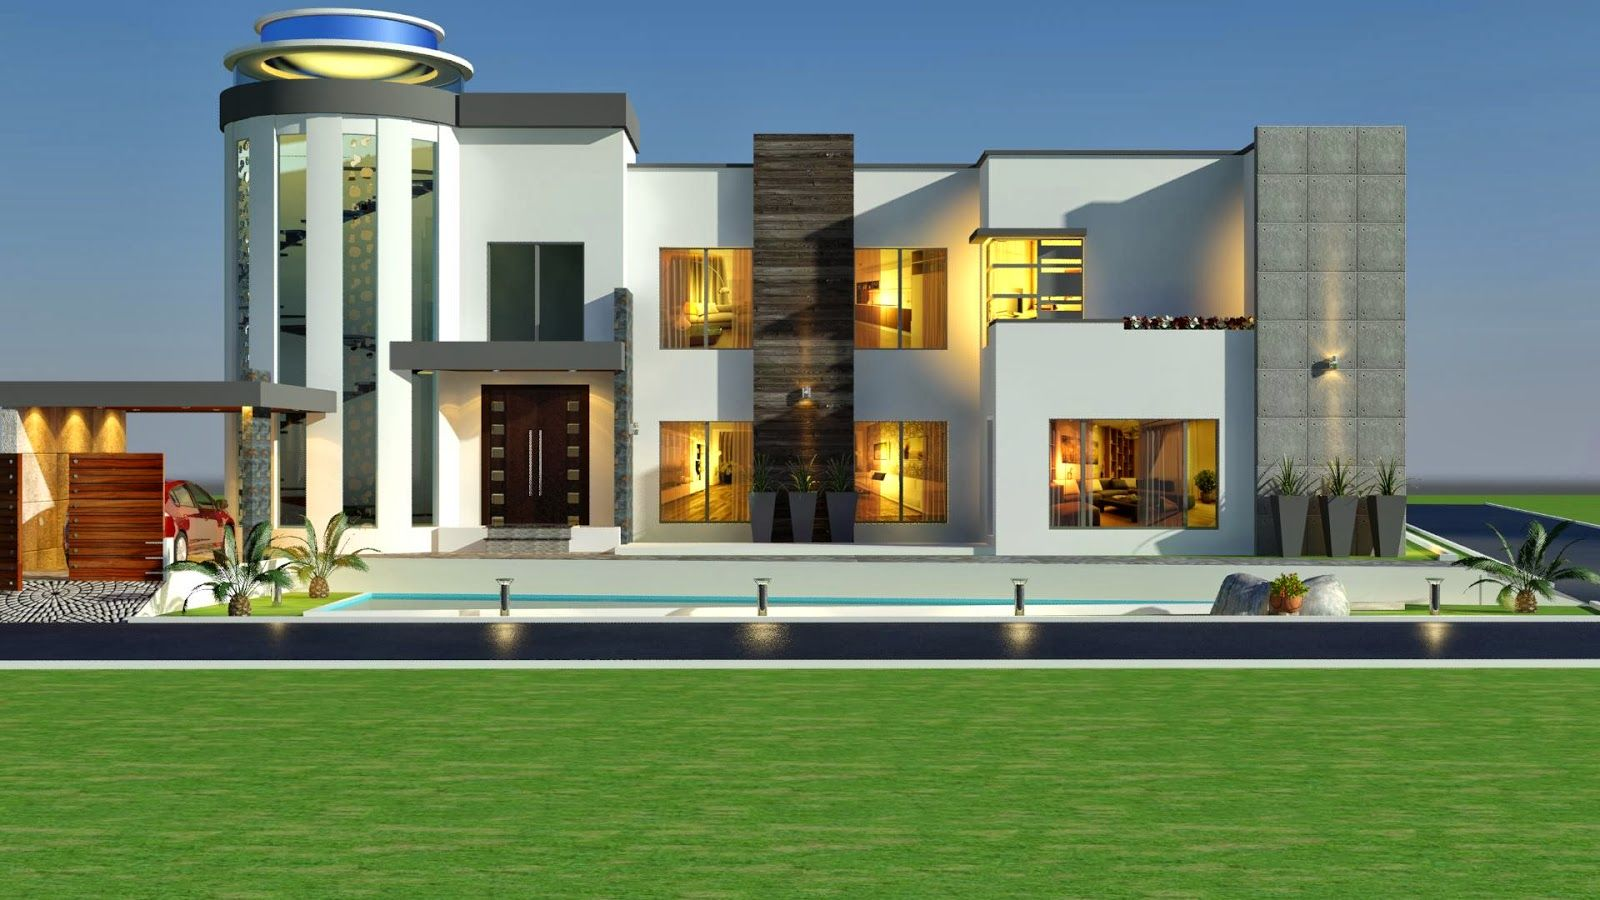 Villa house 2014 3d front elevation kanal modern Best home designs of 2014